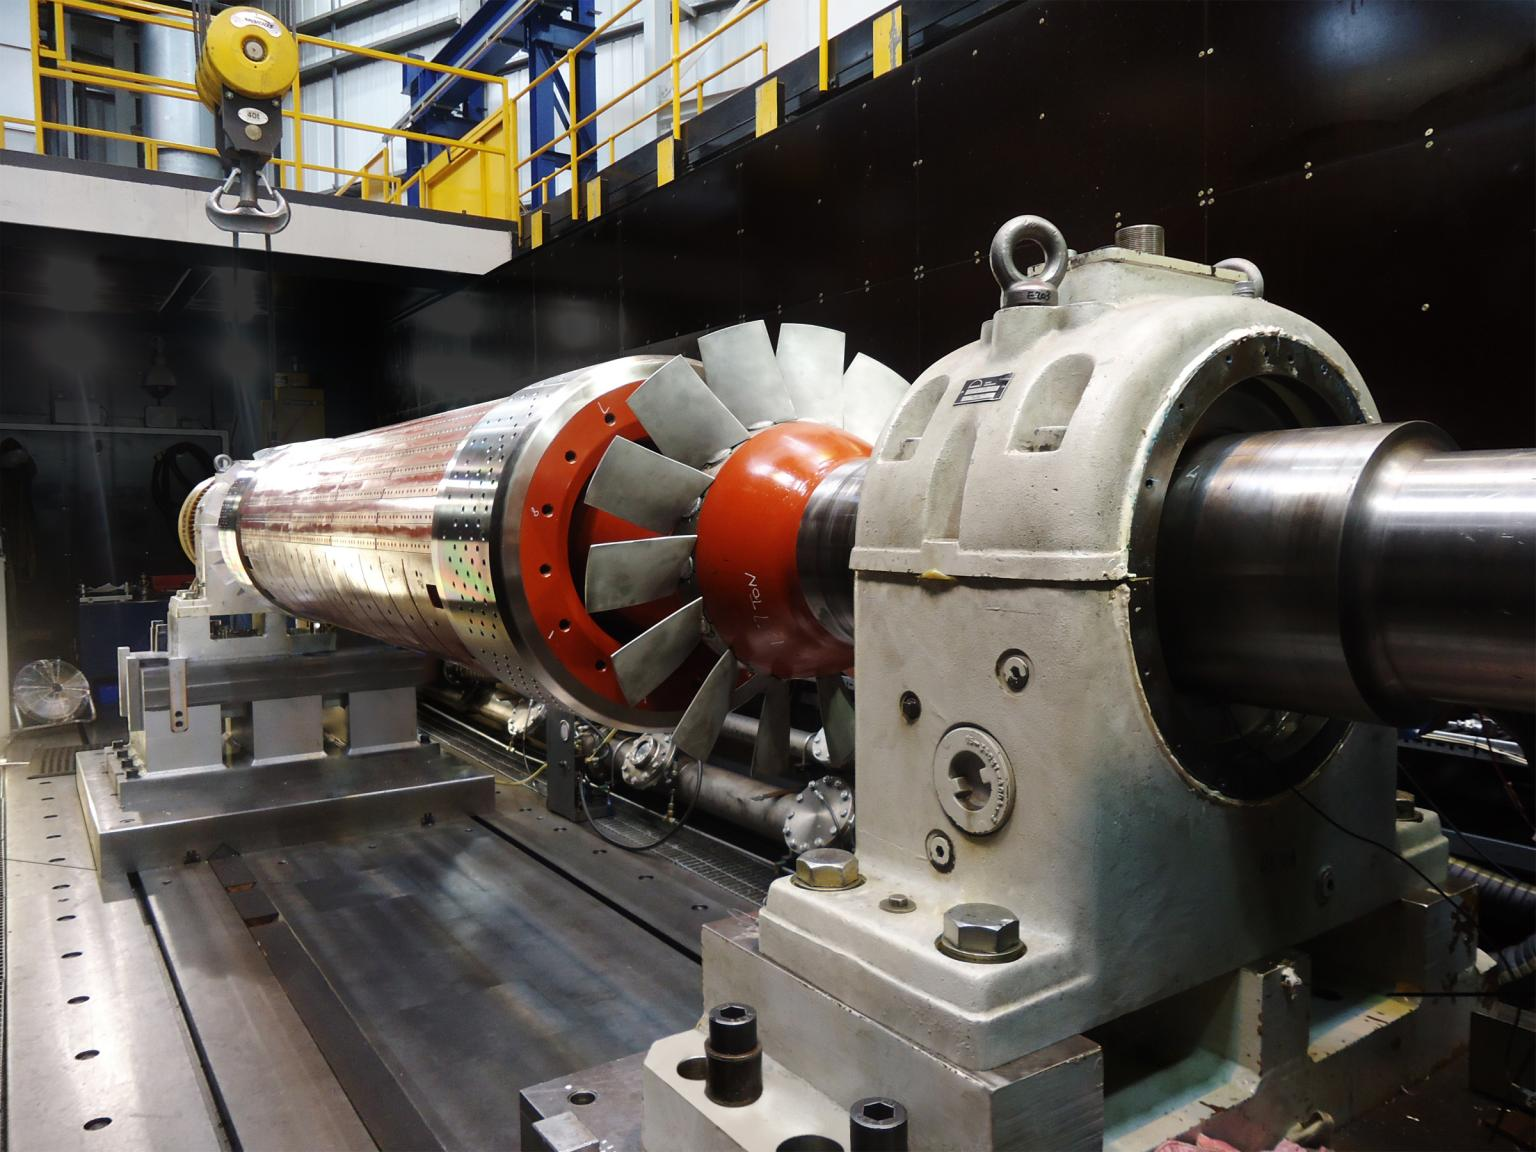 aving completed the rebuild and the electrical, static and mechanical tests, the rotor was then checked for rotational balance, using the company's own purpose-built large capacity overspeed balancing pit